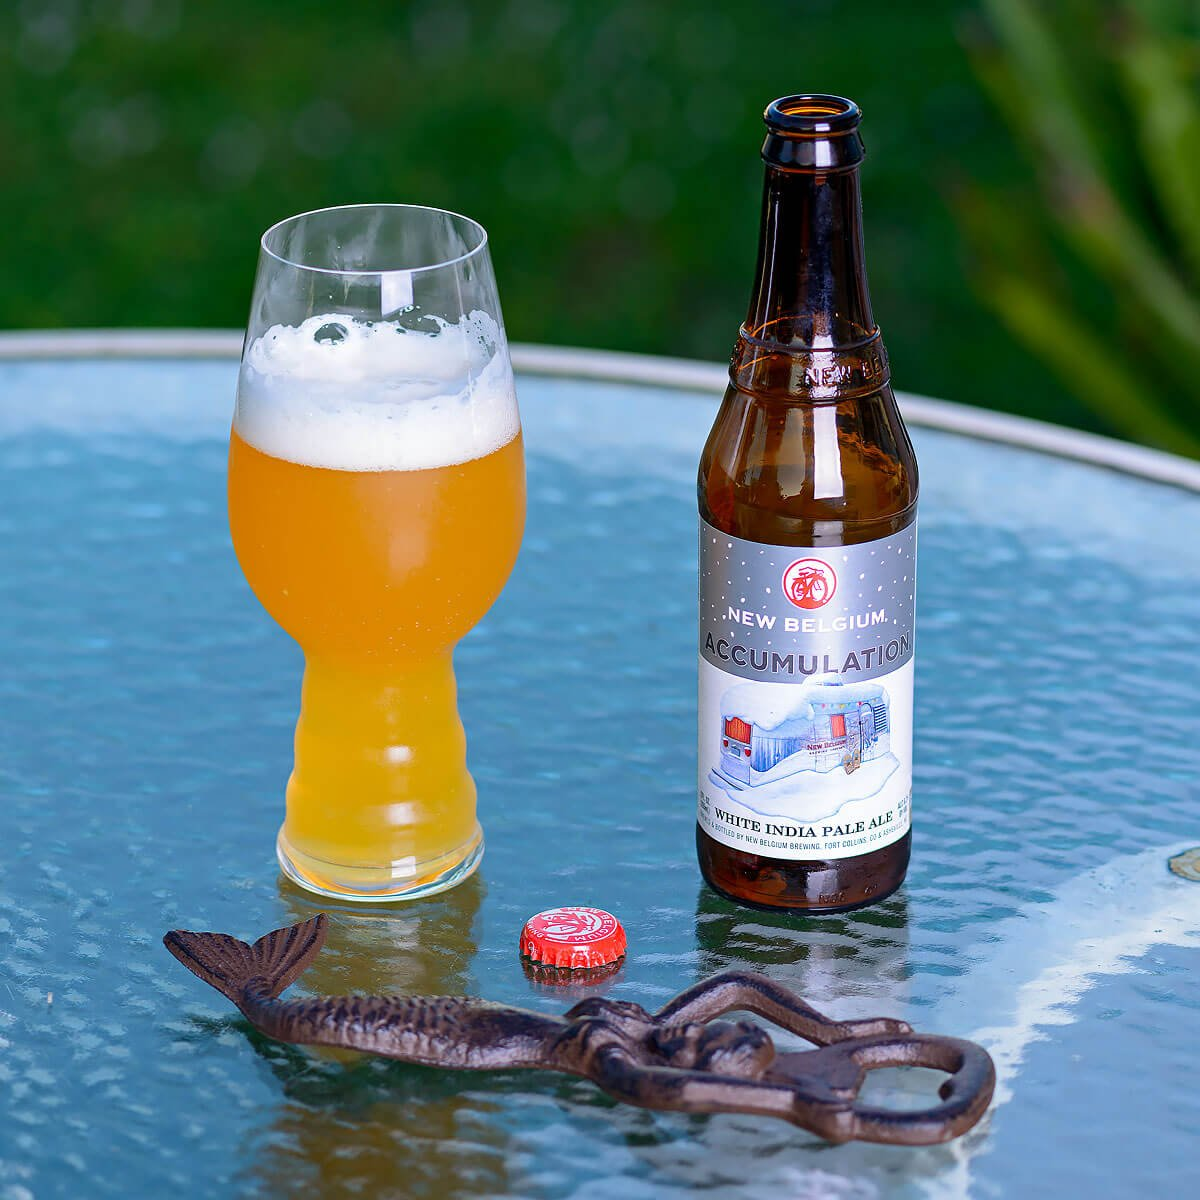 Accumulation White IPA, an American IPA by New Belgium Brewing Company